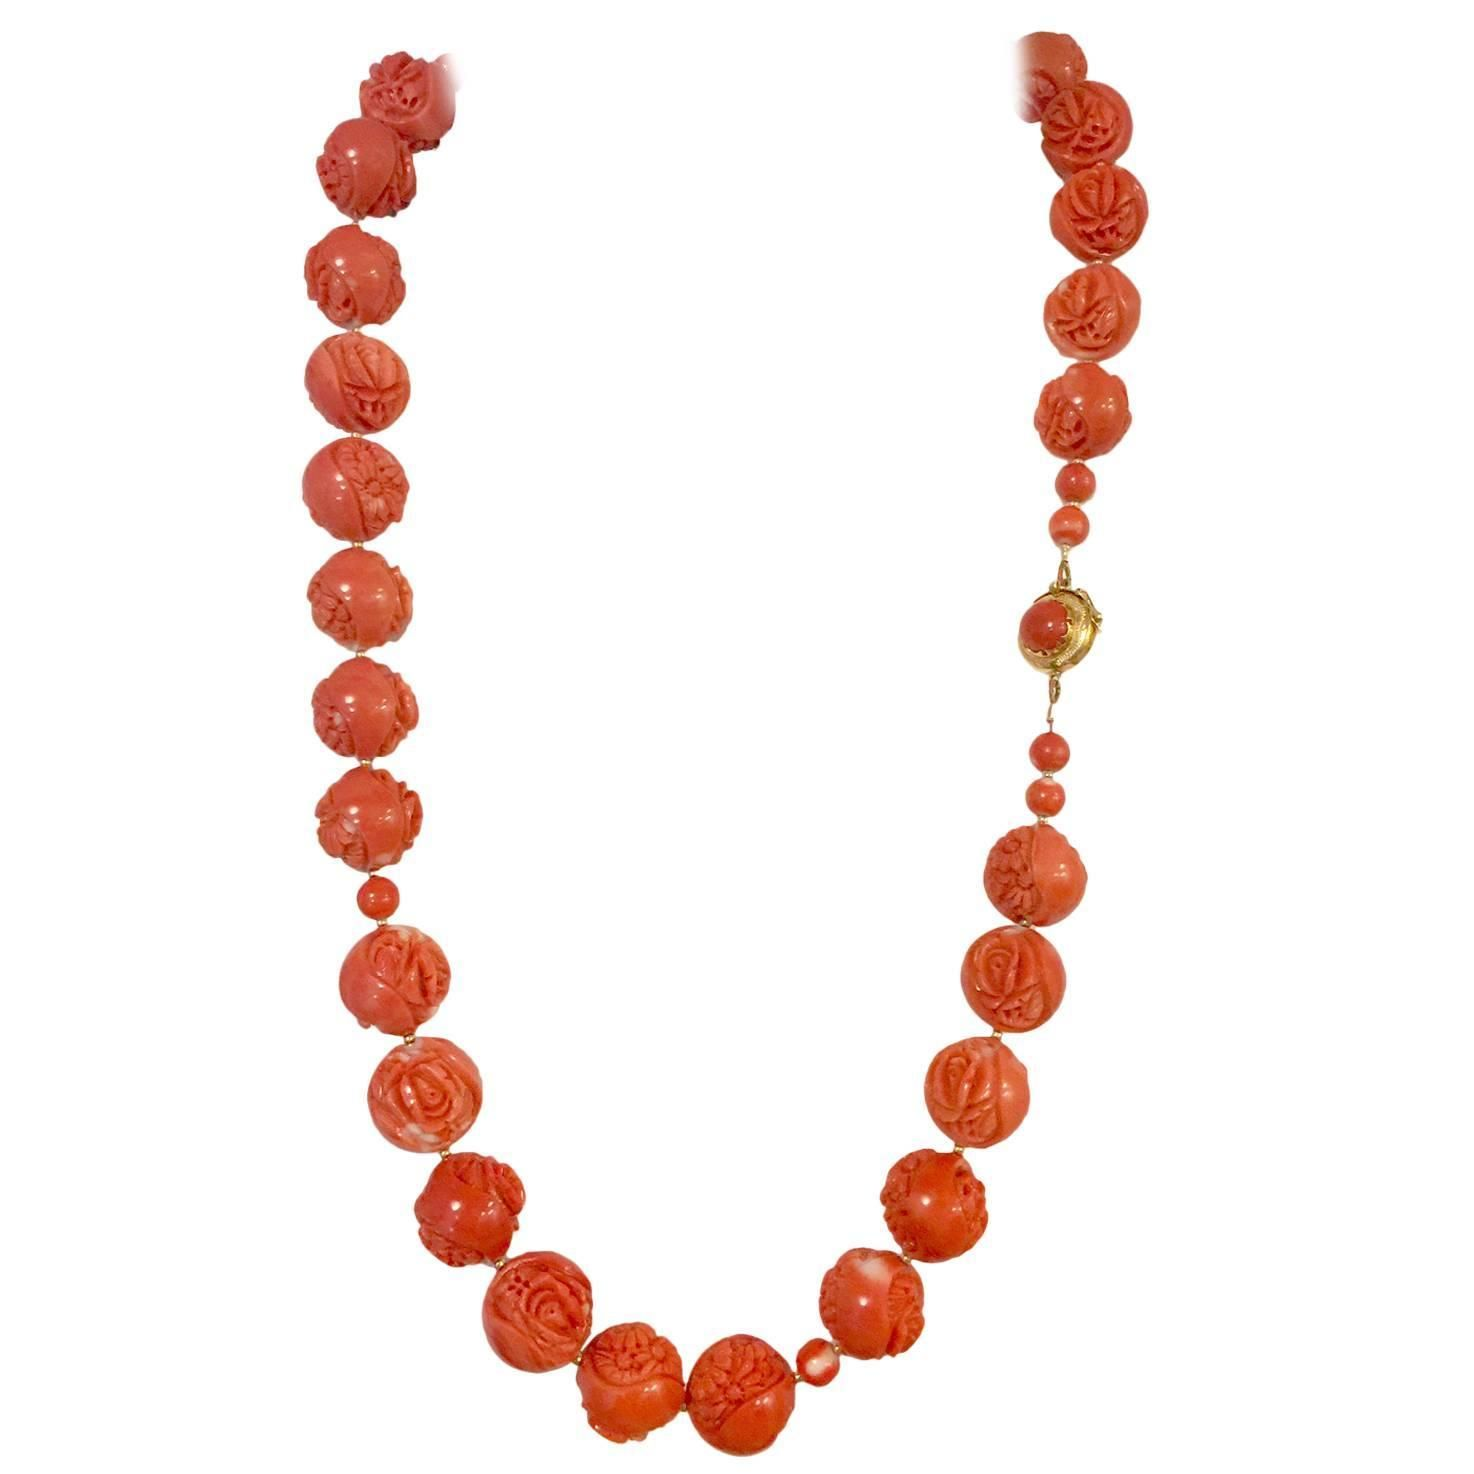 Magnificent Carved Momo Coral Gold Bead Necklace | From a unique collection of vintage beaded necklaces at https://www.1stdibs.com/jewelry/necklaces/beaded-necklaces/